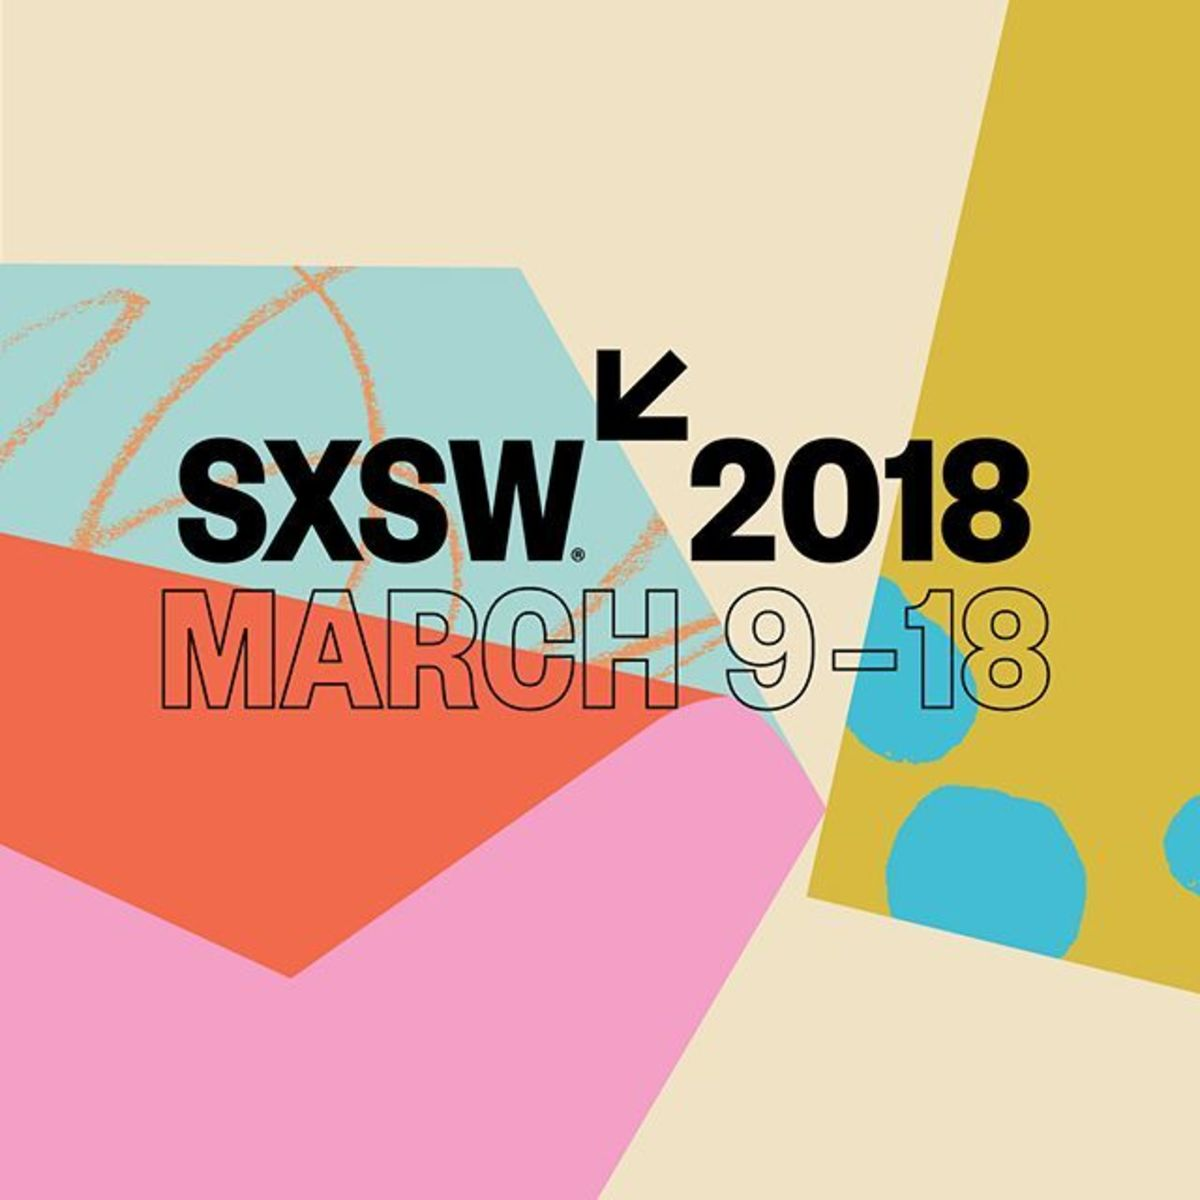 Articlehome were excited to see our work for sxsw 2018 out in the world. more to come. sxsw design keyart